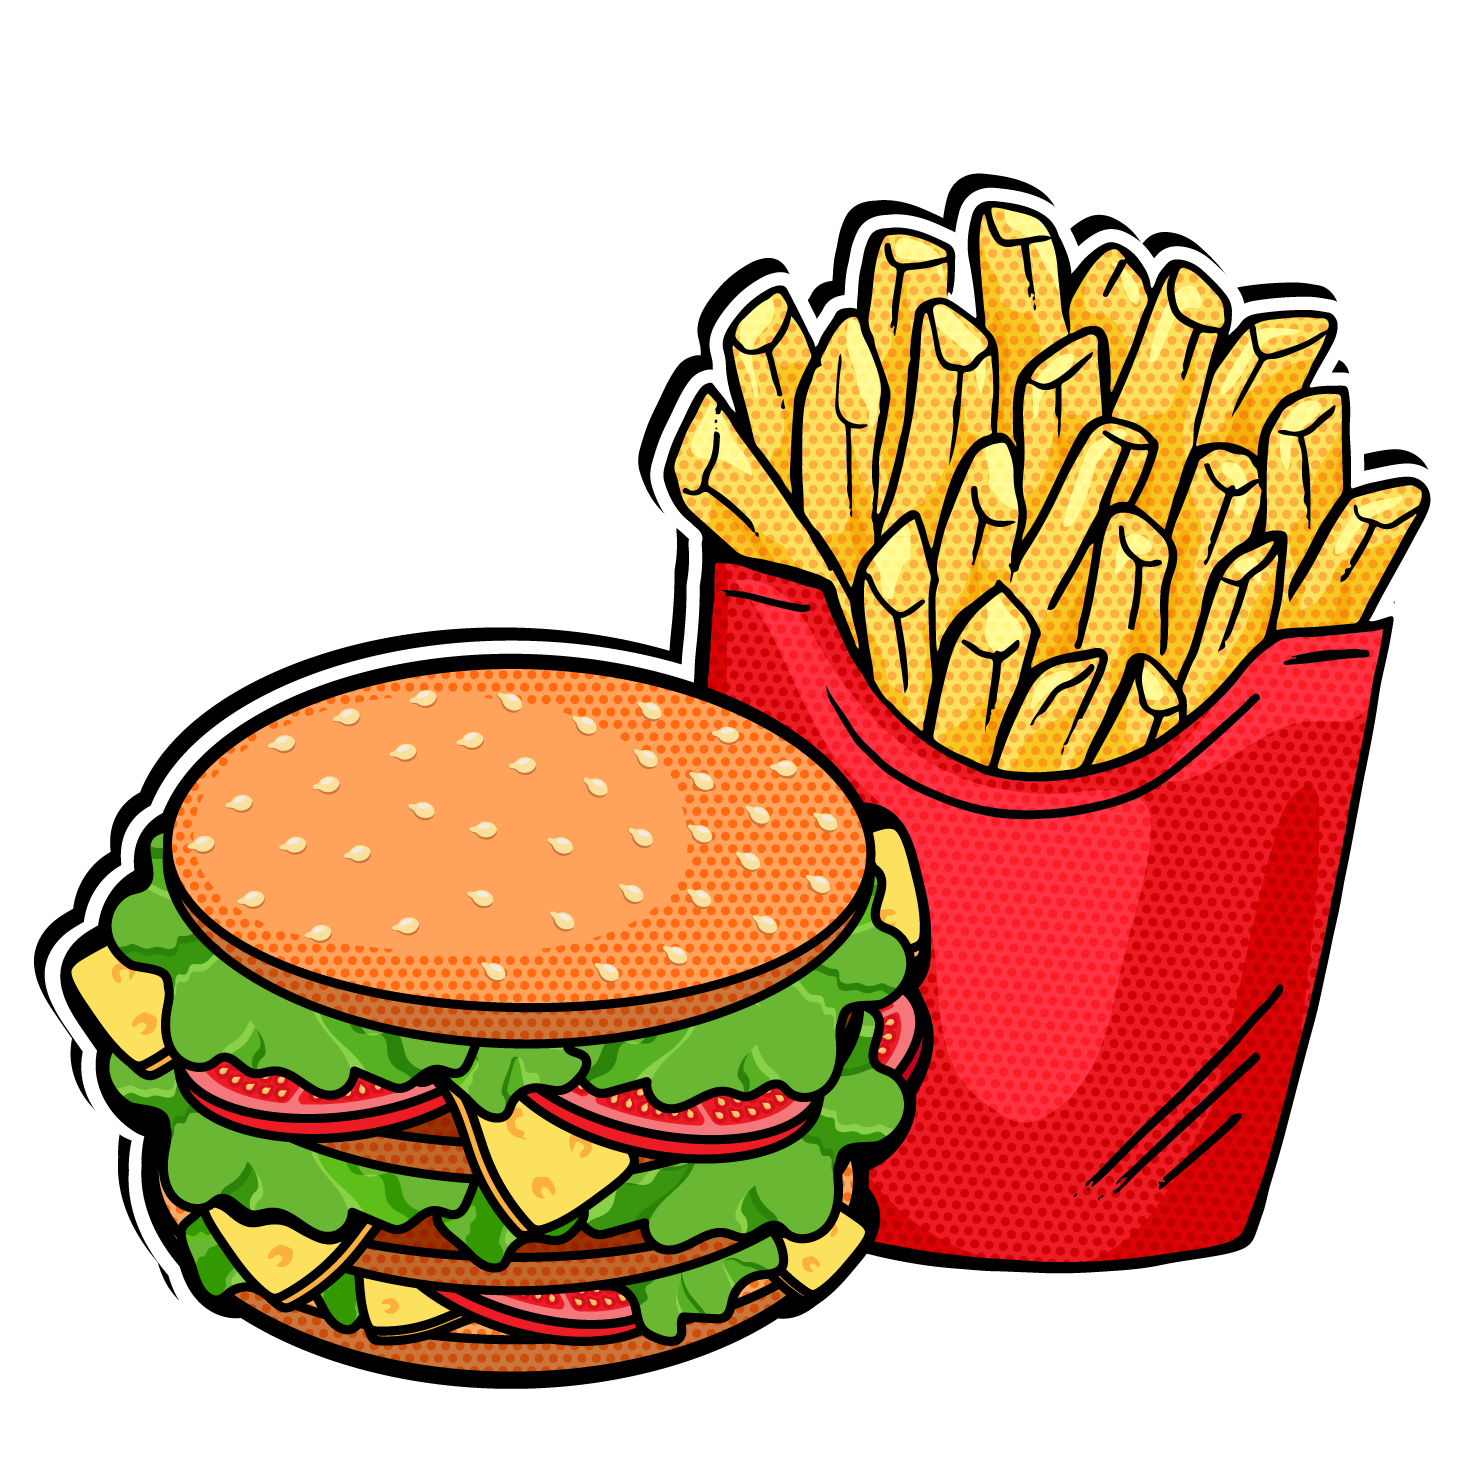 Meal clipart burger meal. Fast food french fries